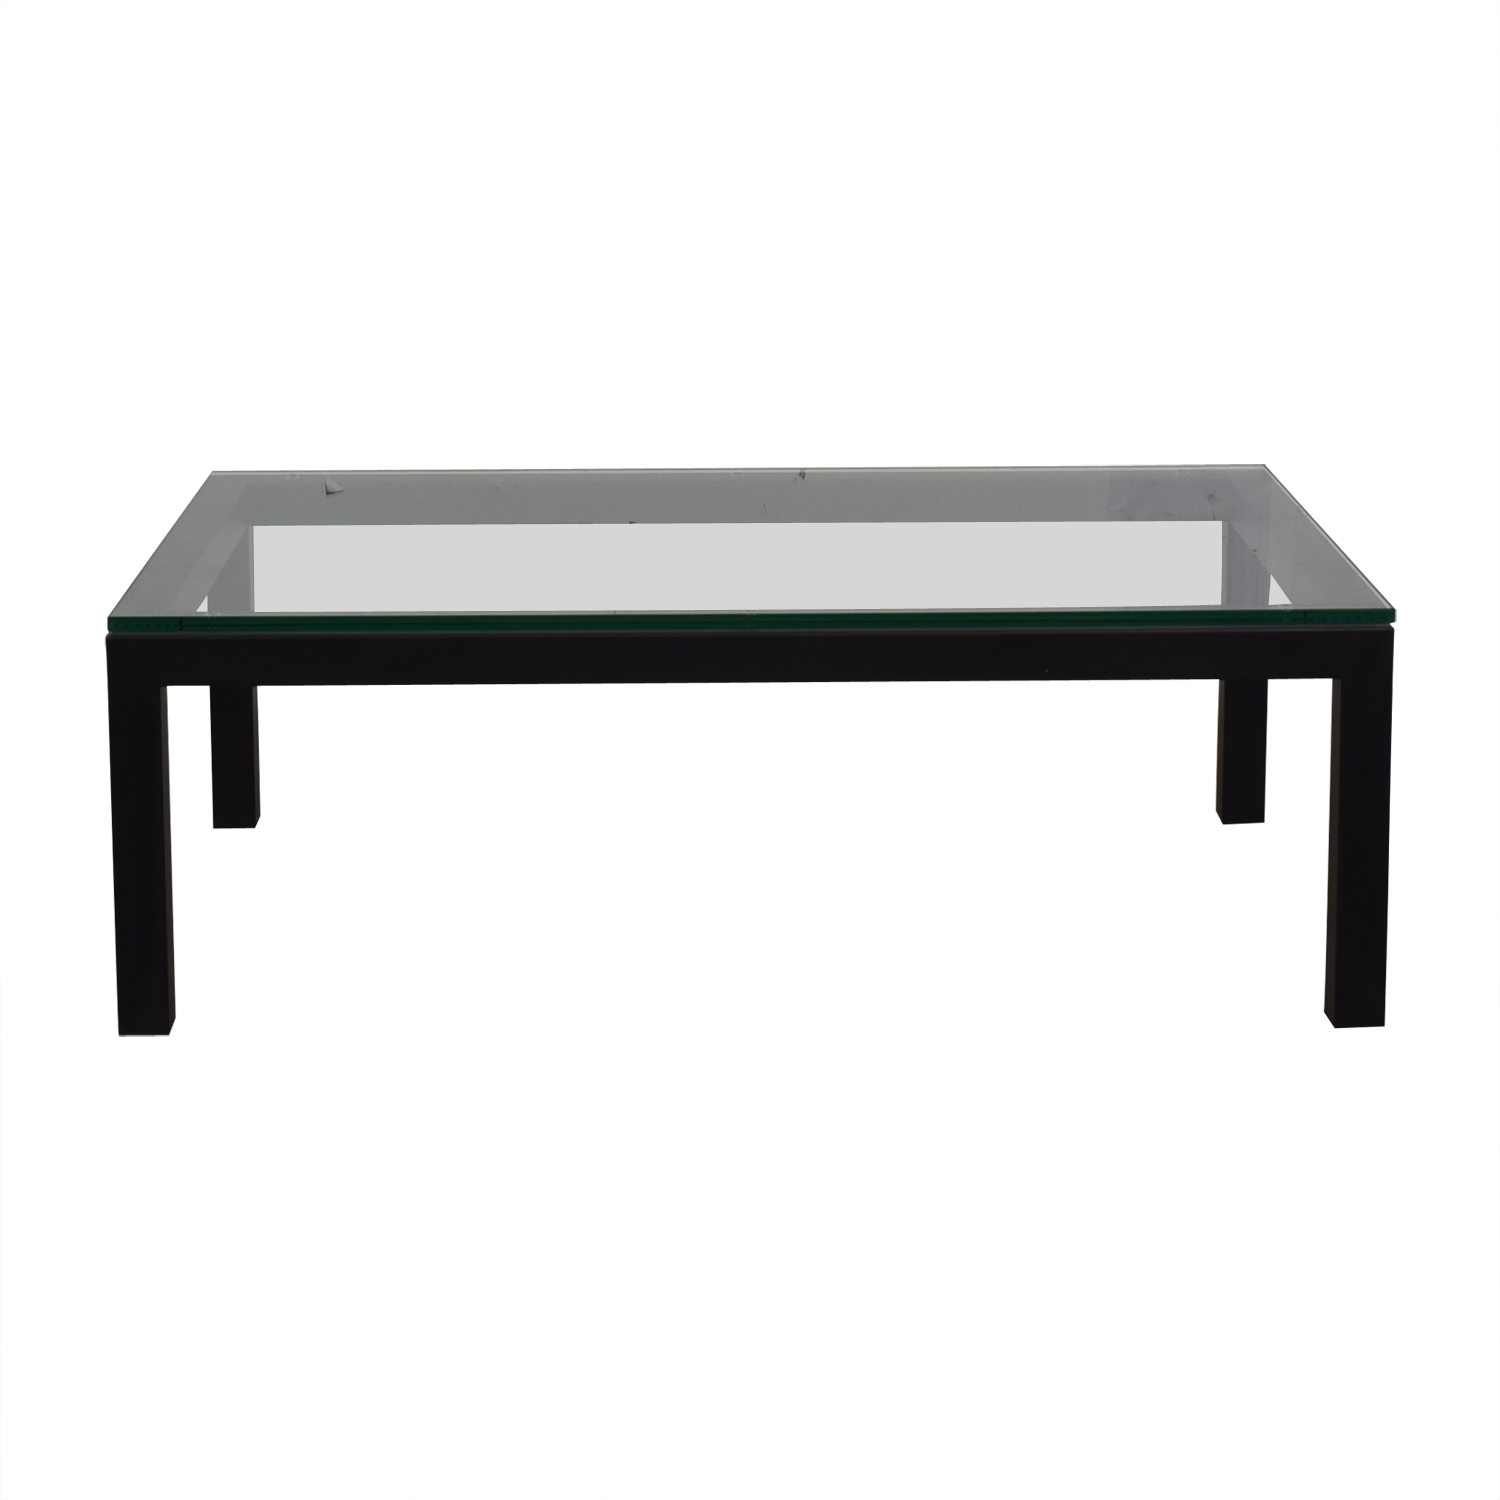 Crate & Barrel Crate & Barrel Glass & Black Coffee Table discount